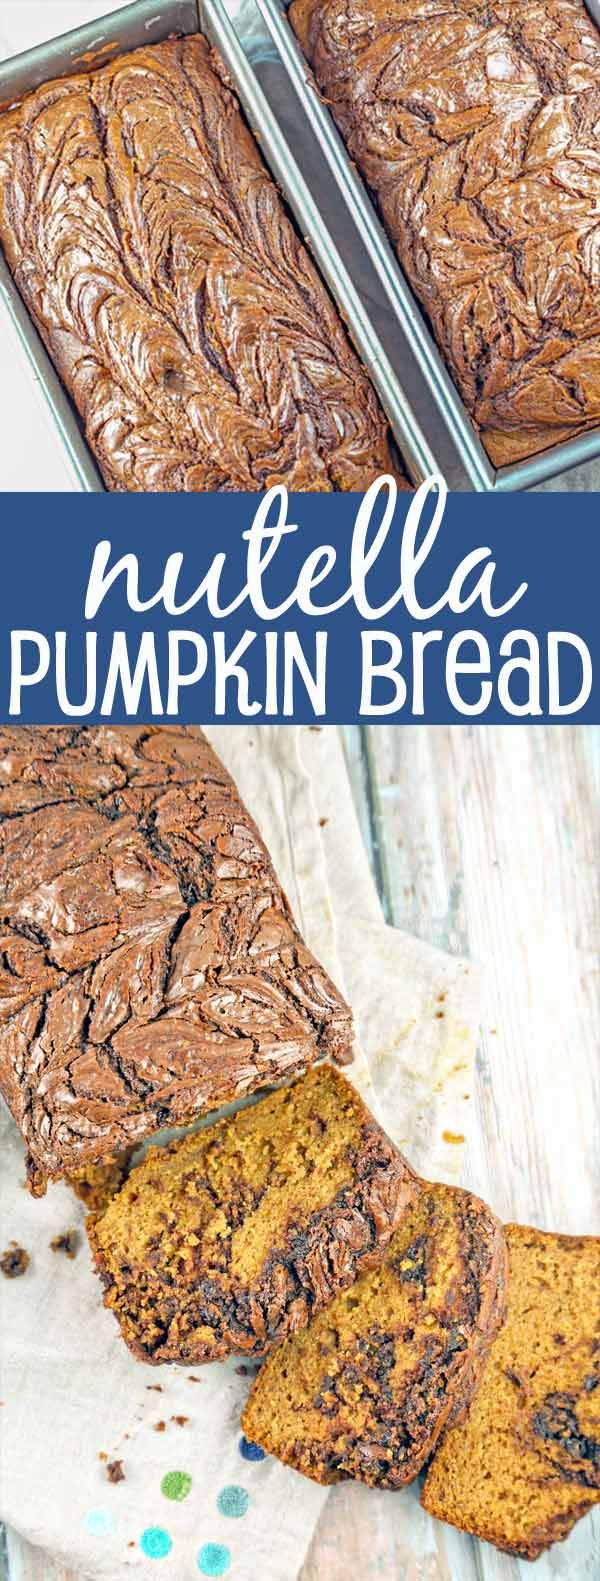 Nutella Pumpkin Bread: Perfectly spiced pumpkin bread with rich swirls of nutella topping the bread. {Bunsen Burner Bakery}